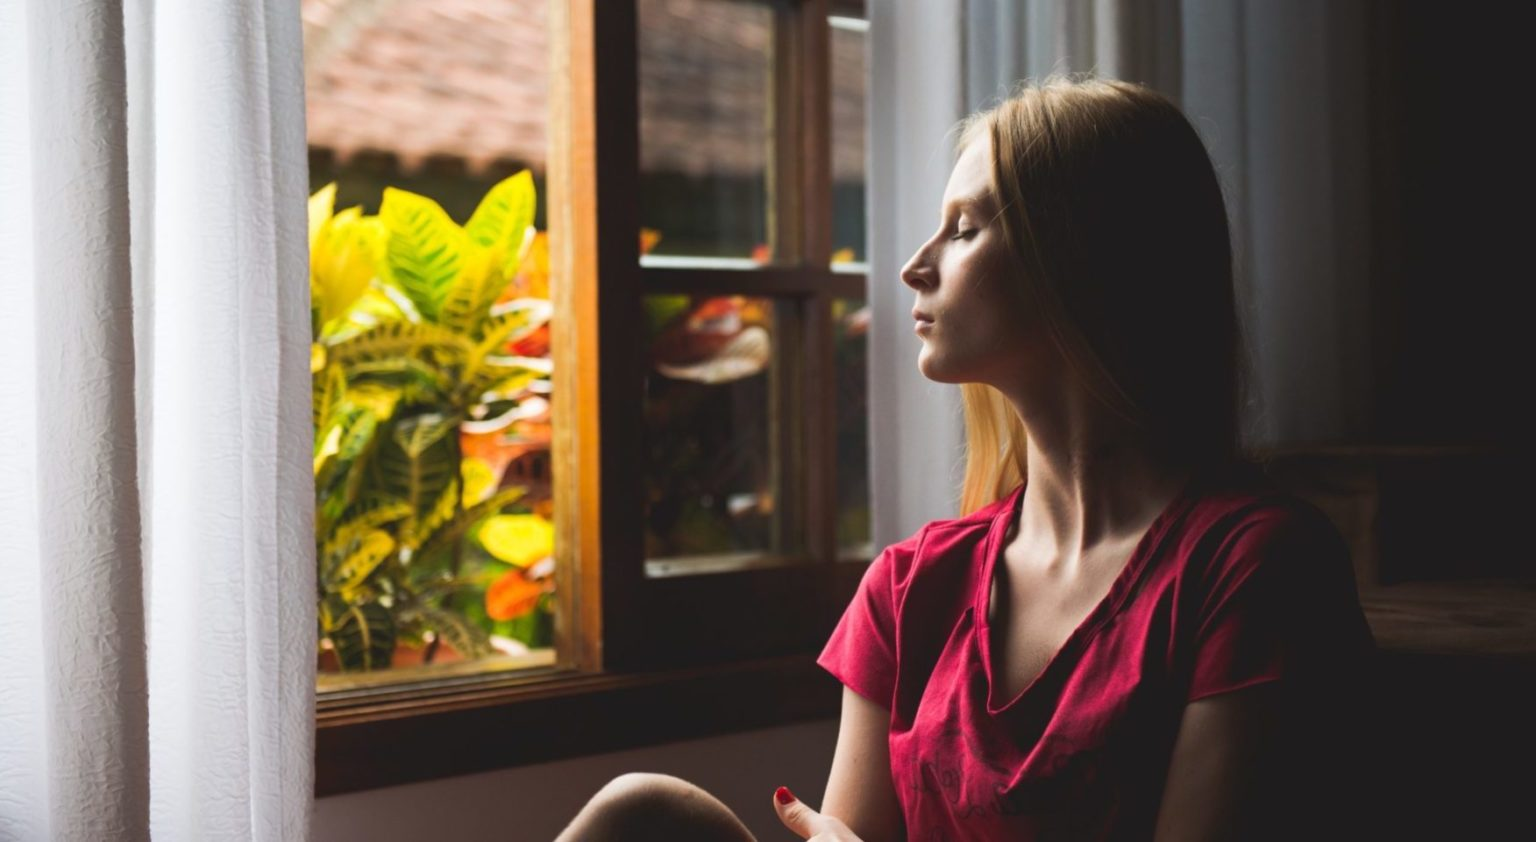 Woman in red blouse staring out of window